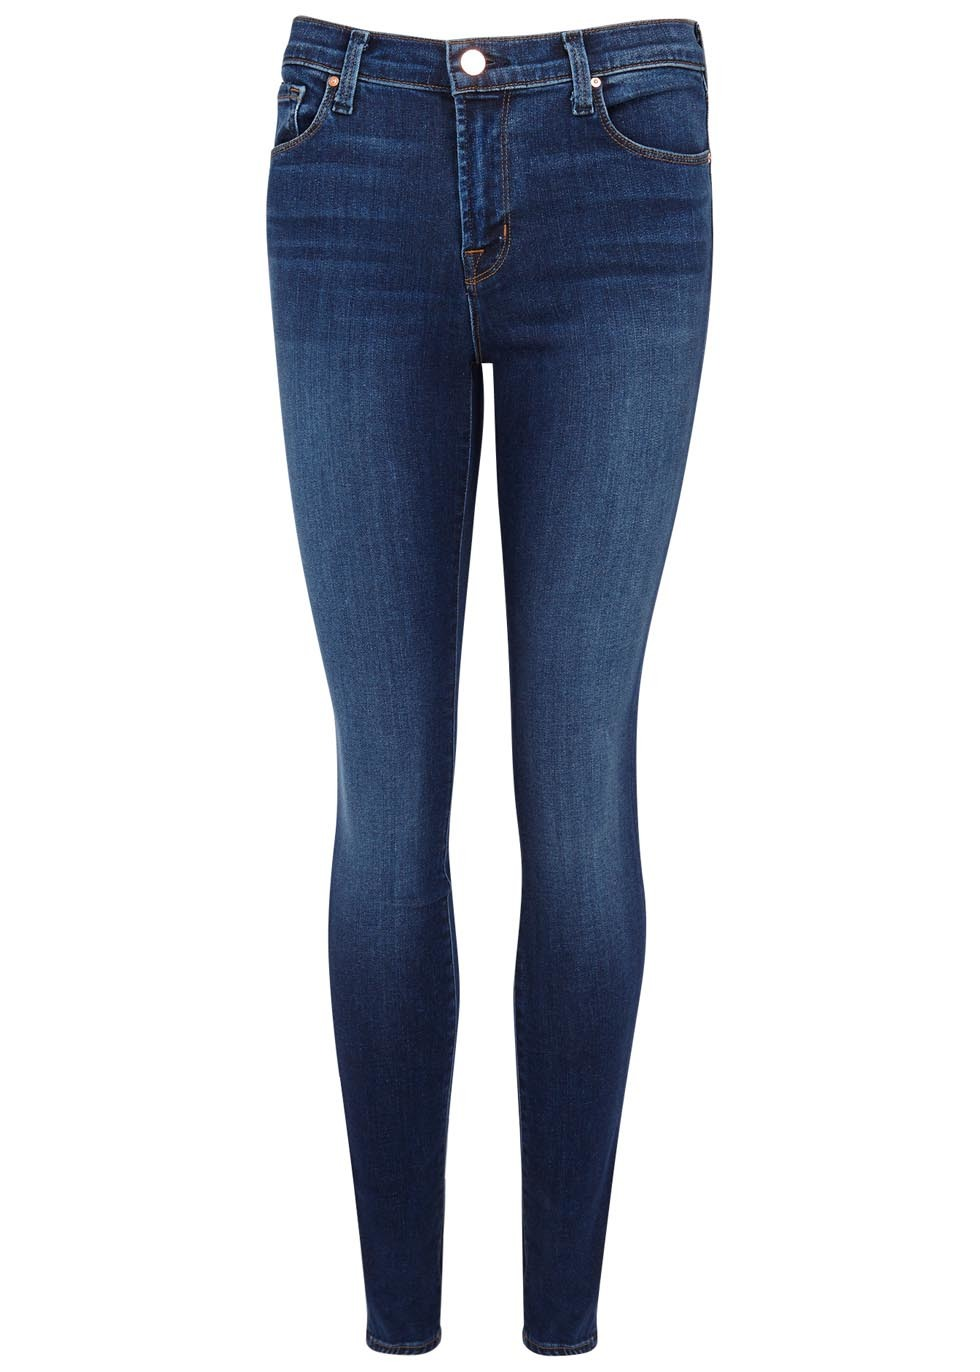 811 Dark Blue Skinny Jeans - style: skinny leg; length: standard; pattern: plain; pocket detail: traditional 5 pocket; waist: mid/regular rise; predominant colour: navy; occasions: casual; fibres: cotton - stretch; jeans detail: dark wash; texture group: denim; pattern type: fabric; wardrobe: basic; season: a/w 2016